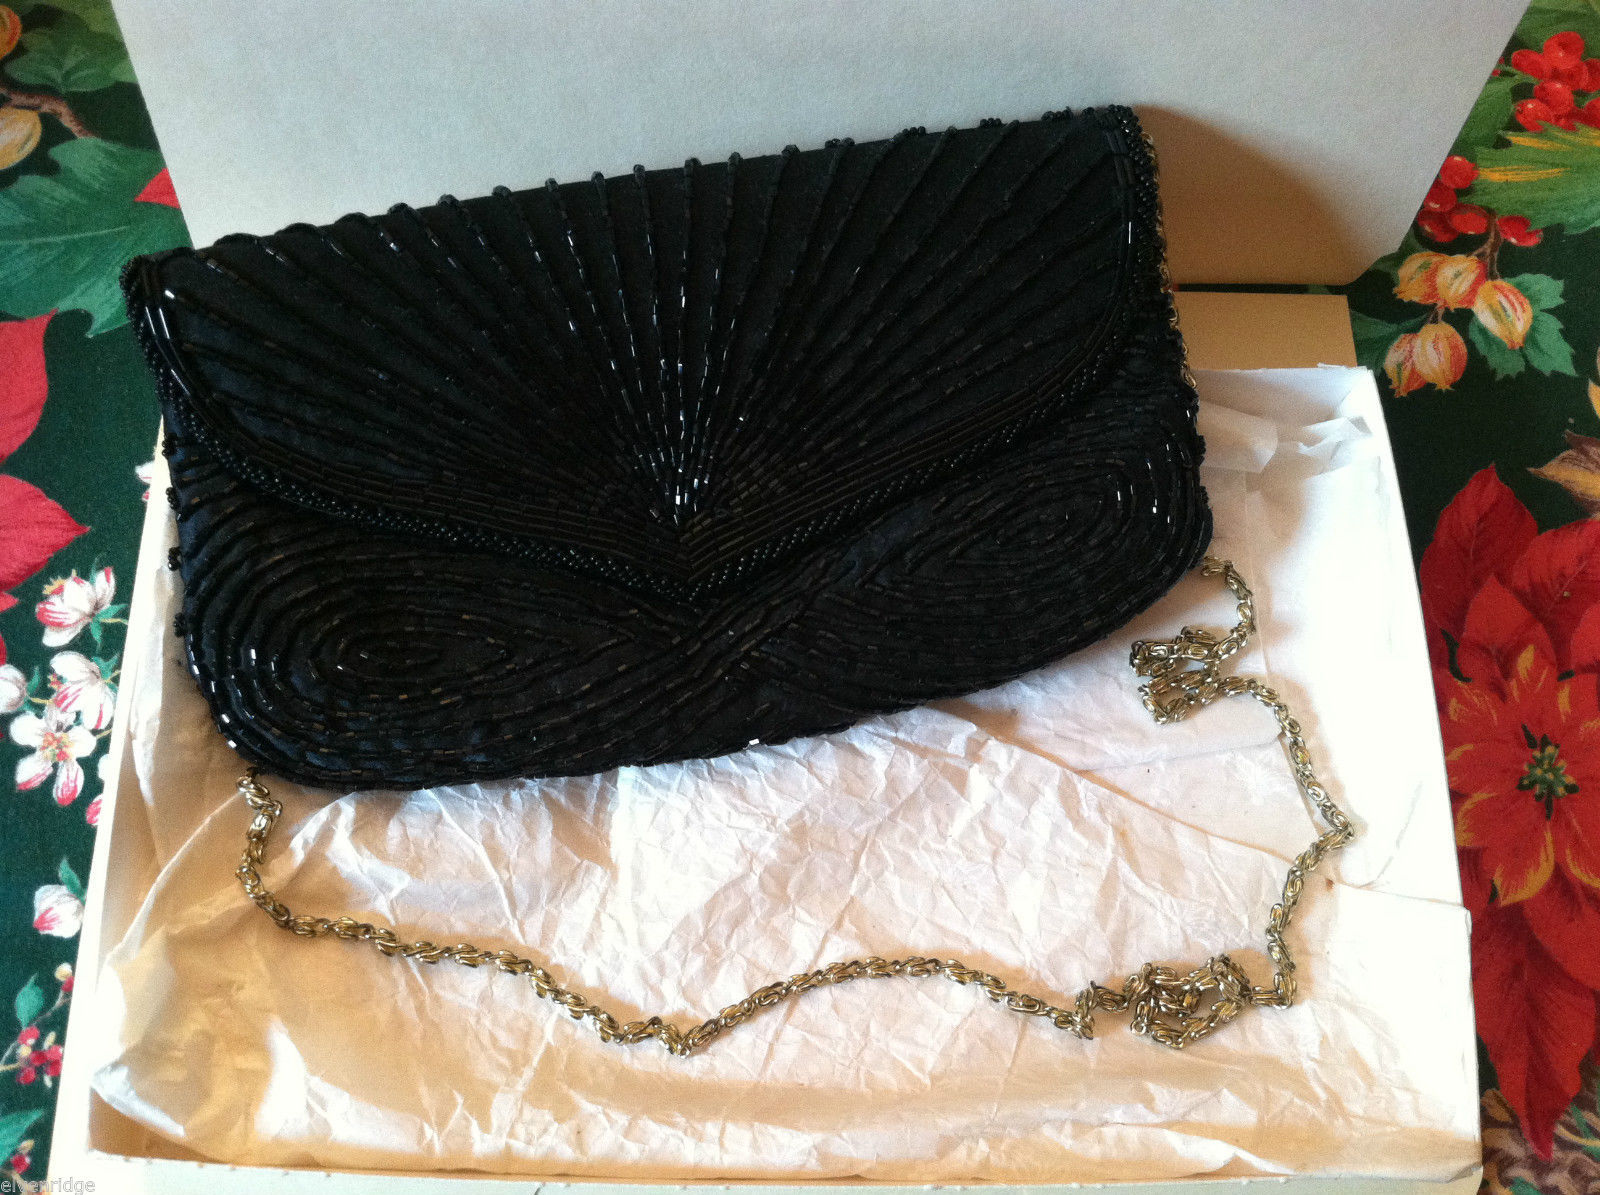 Vintage Black Beaded Purse w/ gold chain in excellent condition